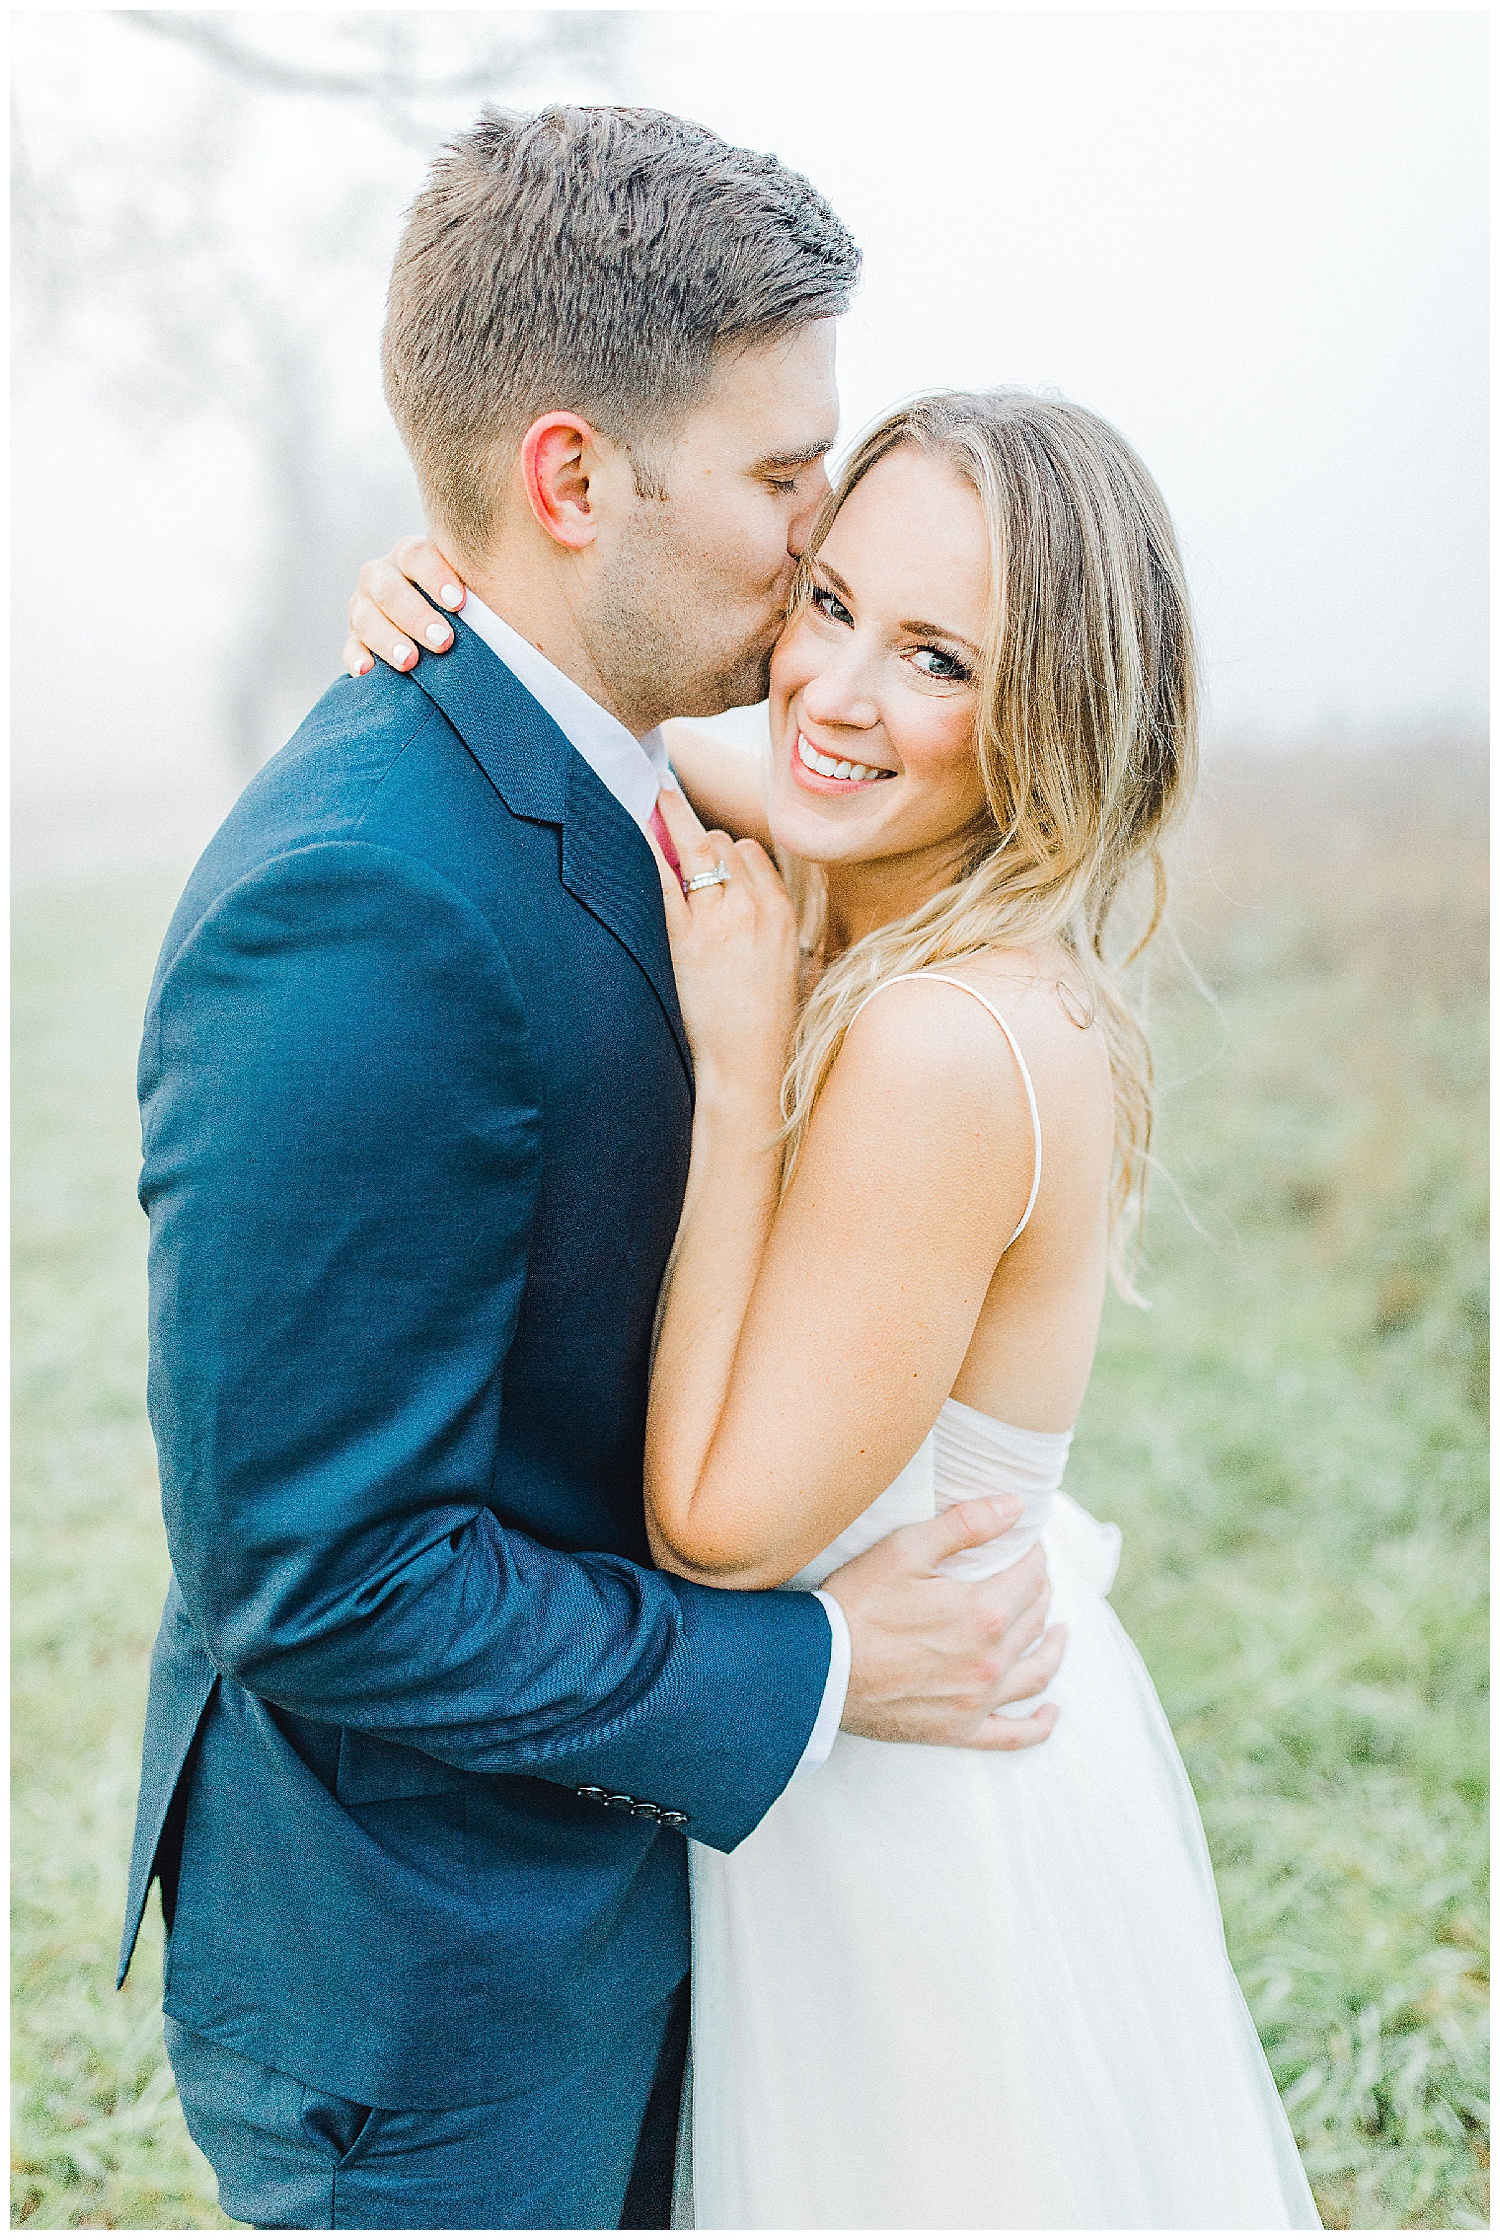 Emma Rose Company recently got to travel all the way to Nashville to photograph the most beautiful post-wedding bride and groom portraits in the Great Smoky Mountains with a gorgeous couple! Nashville wedding inspiration at it's finest._0014.jpg